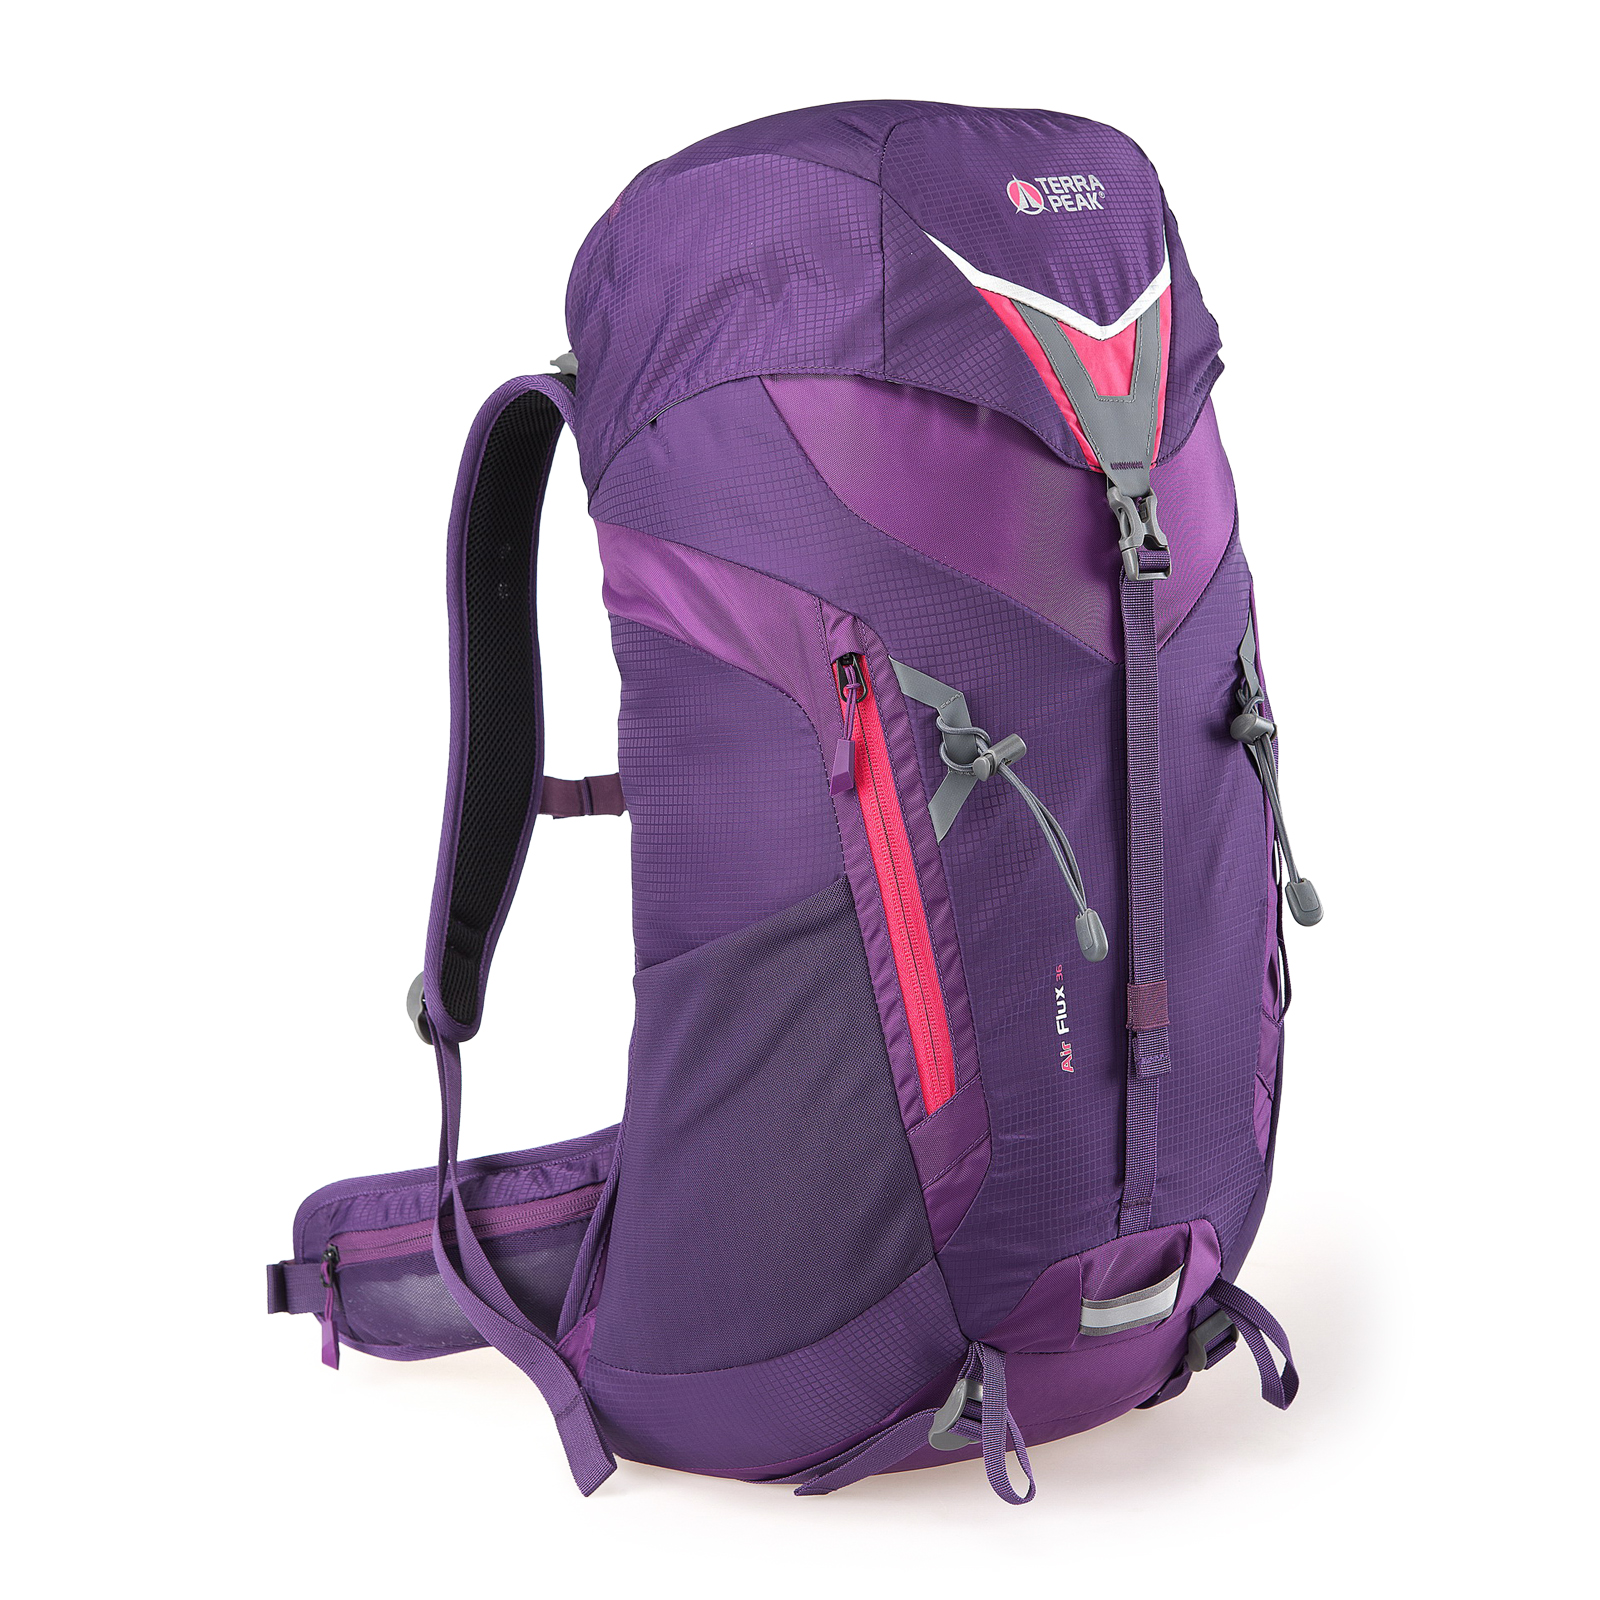 rucksack airflux 36 purple outdoor time4bags. Black Bedroom Furniture Sets. Home Design Ideas